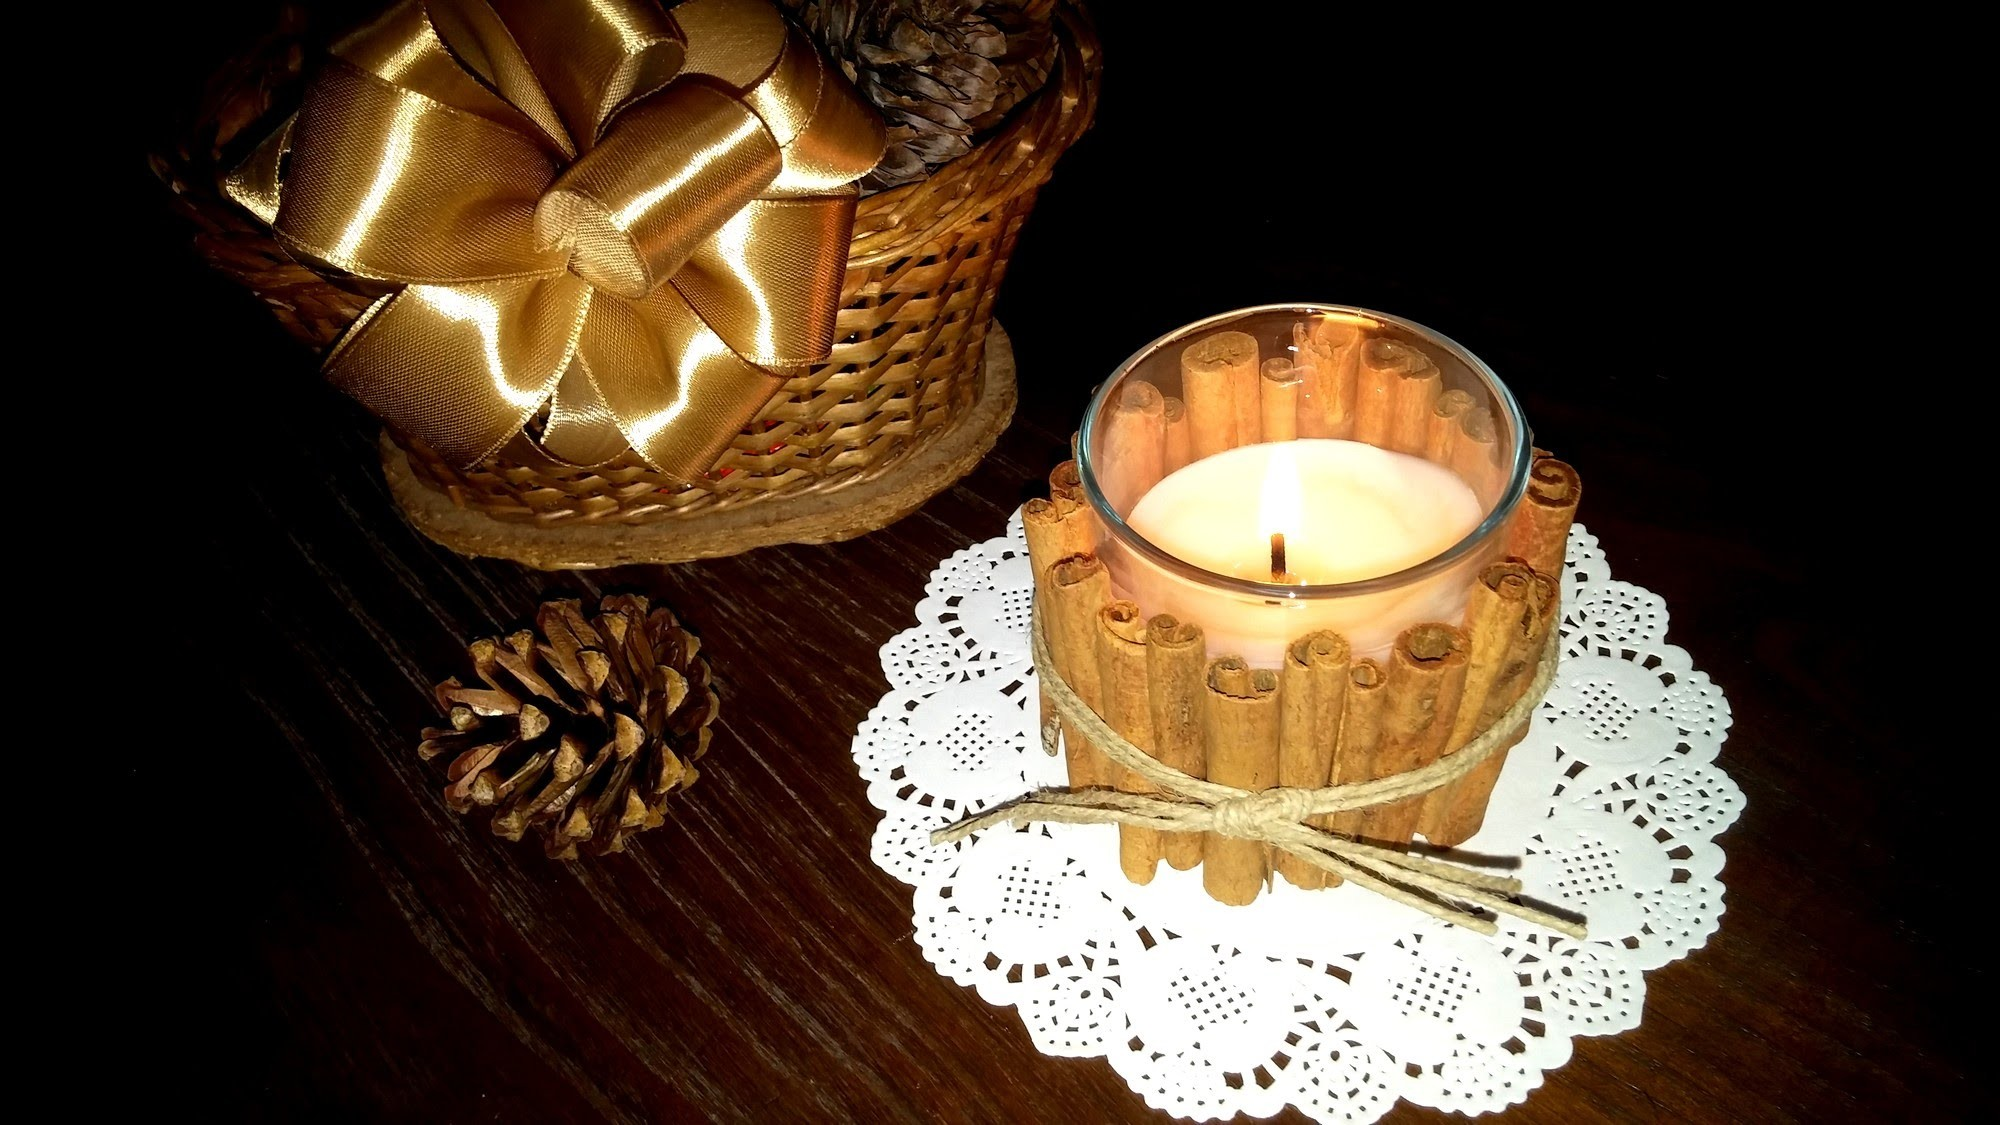 Vela decorada com paus de canela - DIY - Aromatic candle with cinnamon